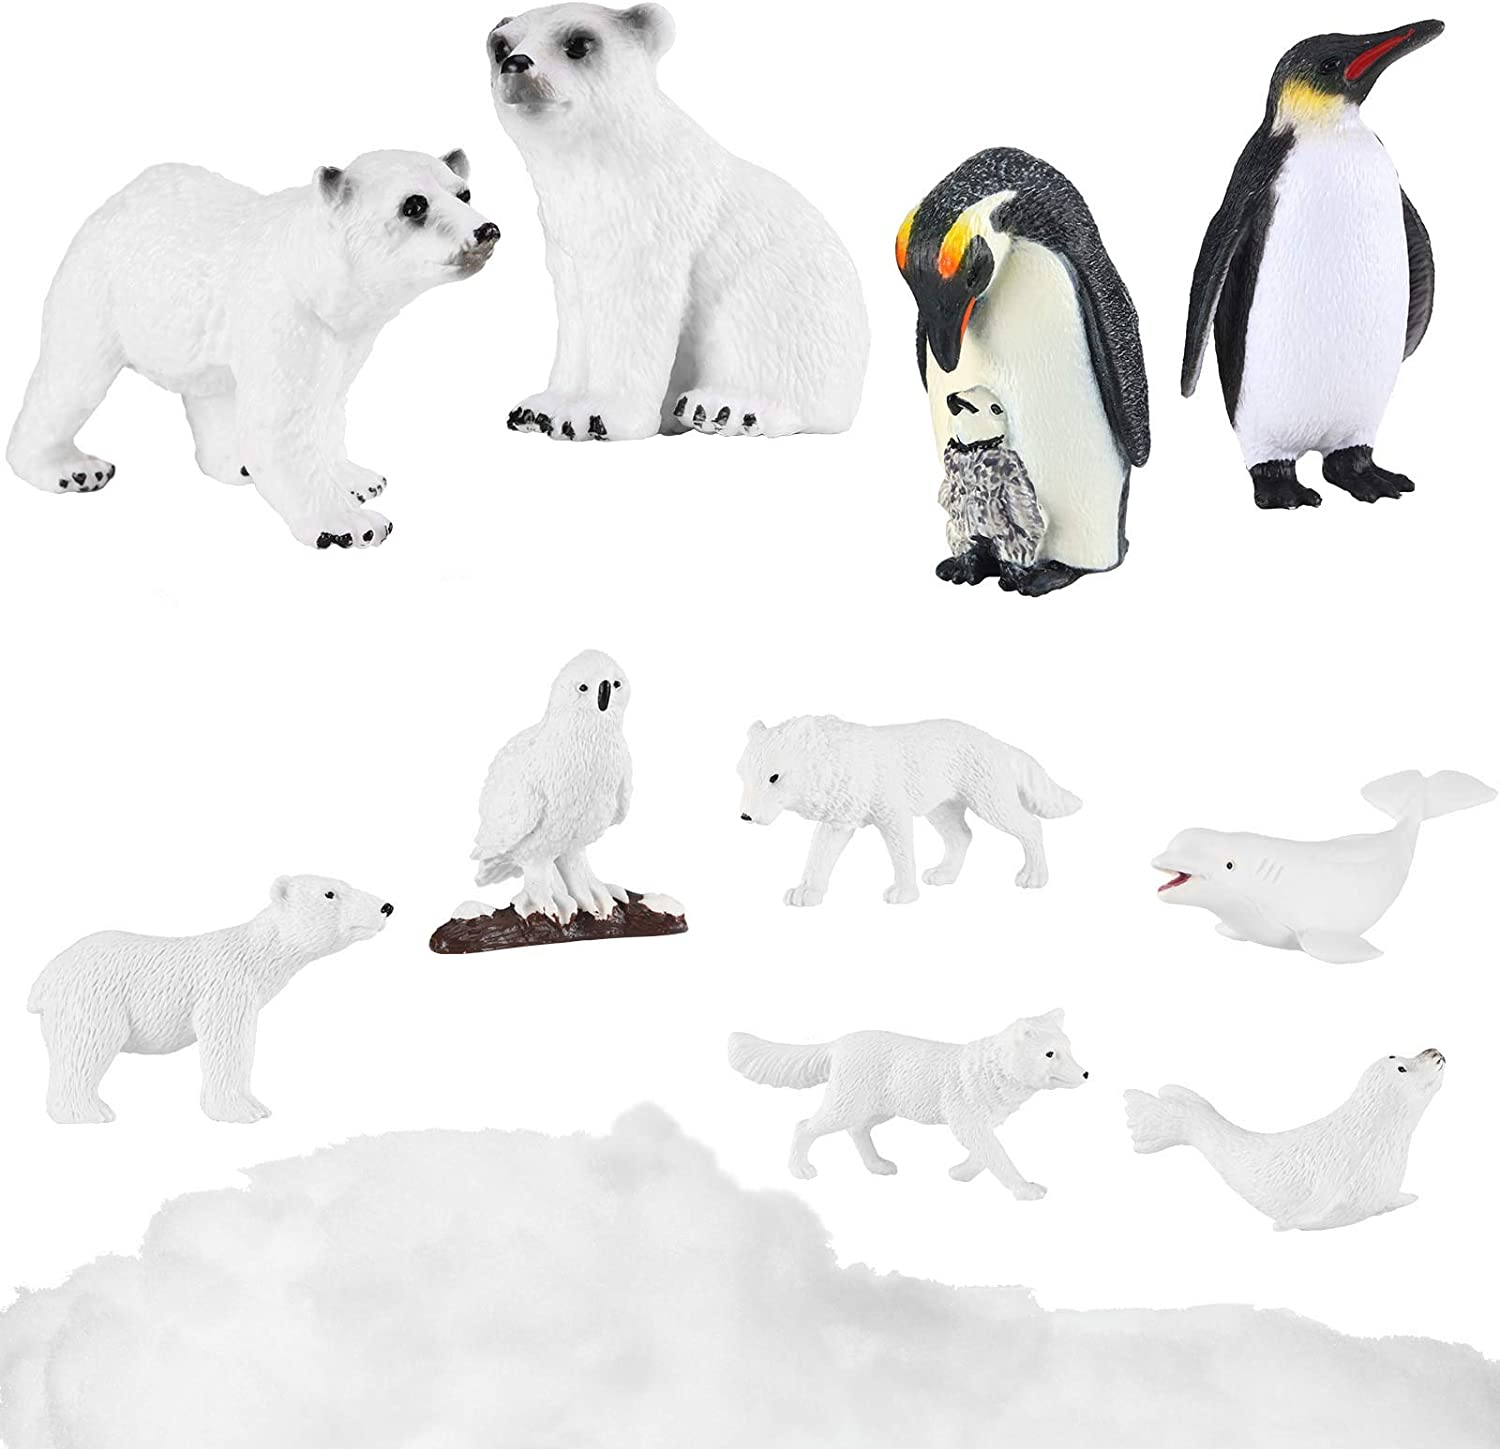 10 Pieces Polar Animal Figurines Set Realistic Arctic Figures Animal Figures Toys Including Artificial Fake Snow Decor Penguin Seal Dolphin Christmas Toys for Boys and Girls